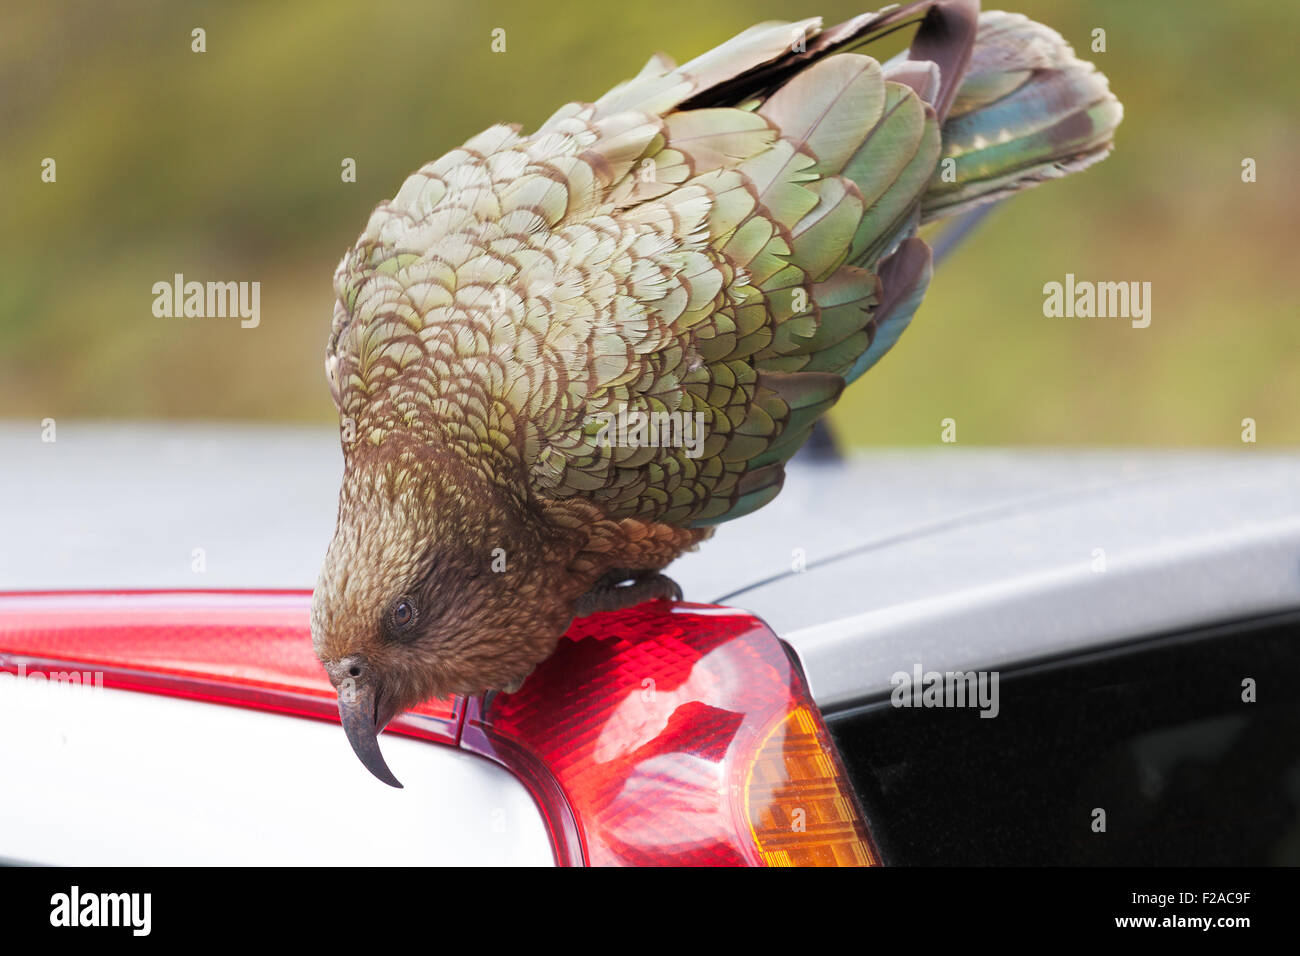 Kea Parrot landed on tourist's car at Fiordland National Park, New Zealand Stock Photo